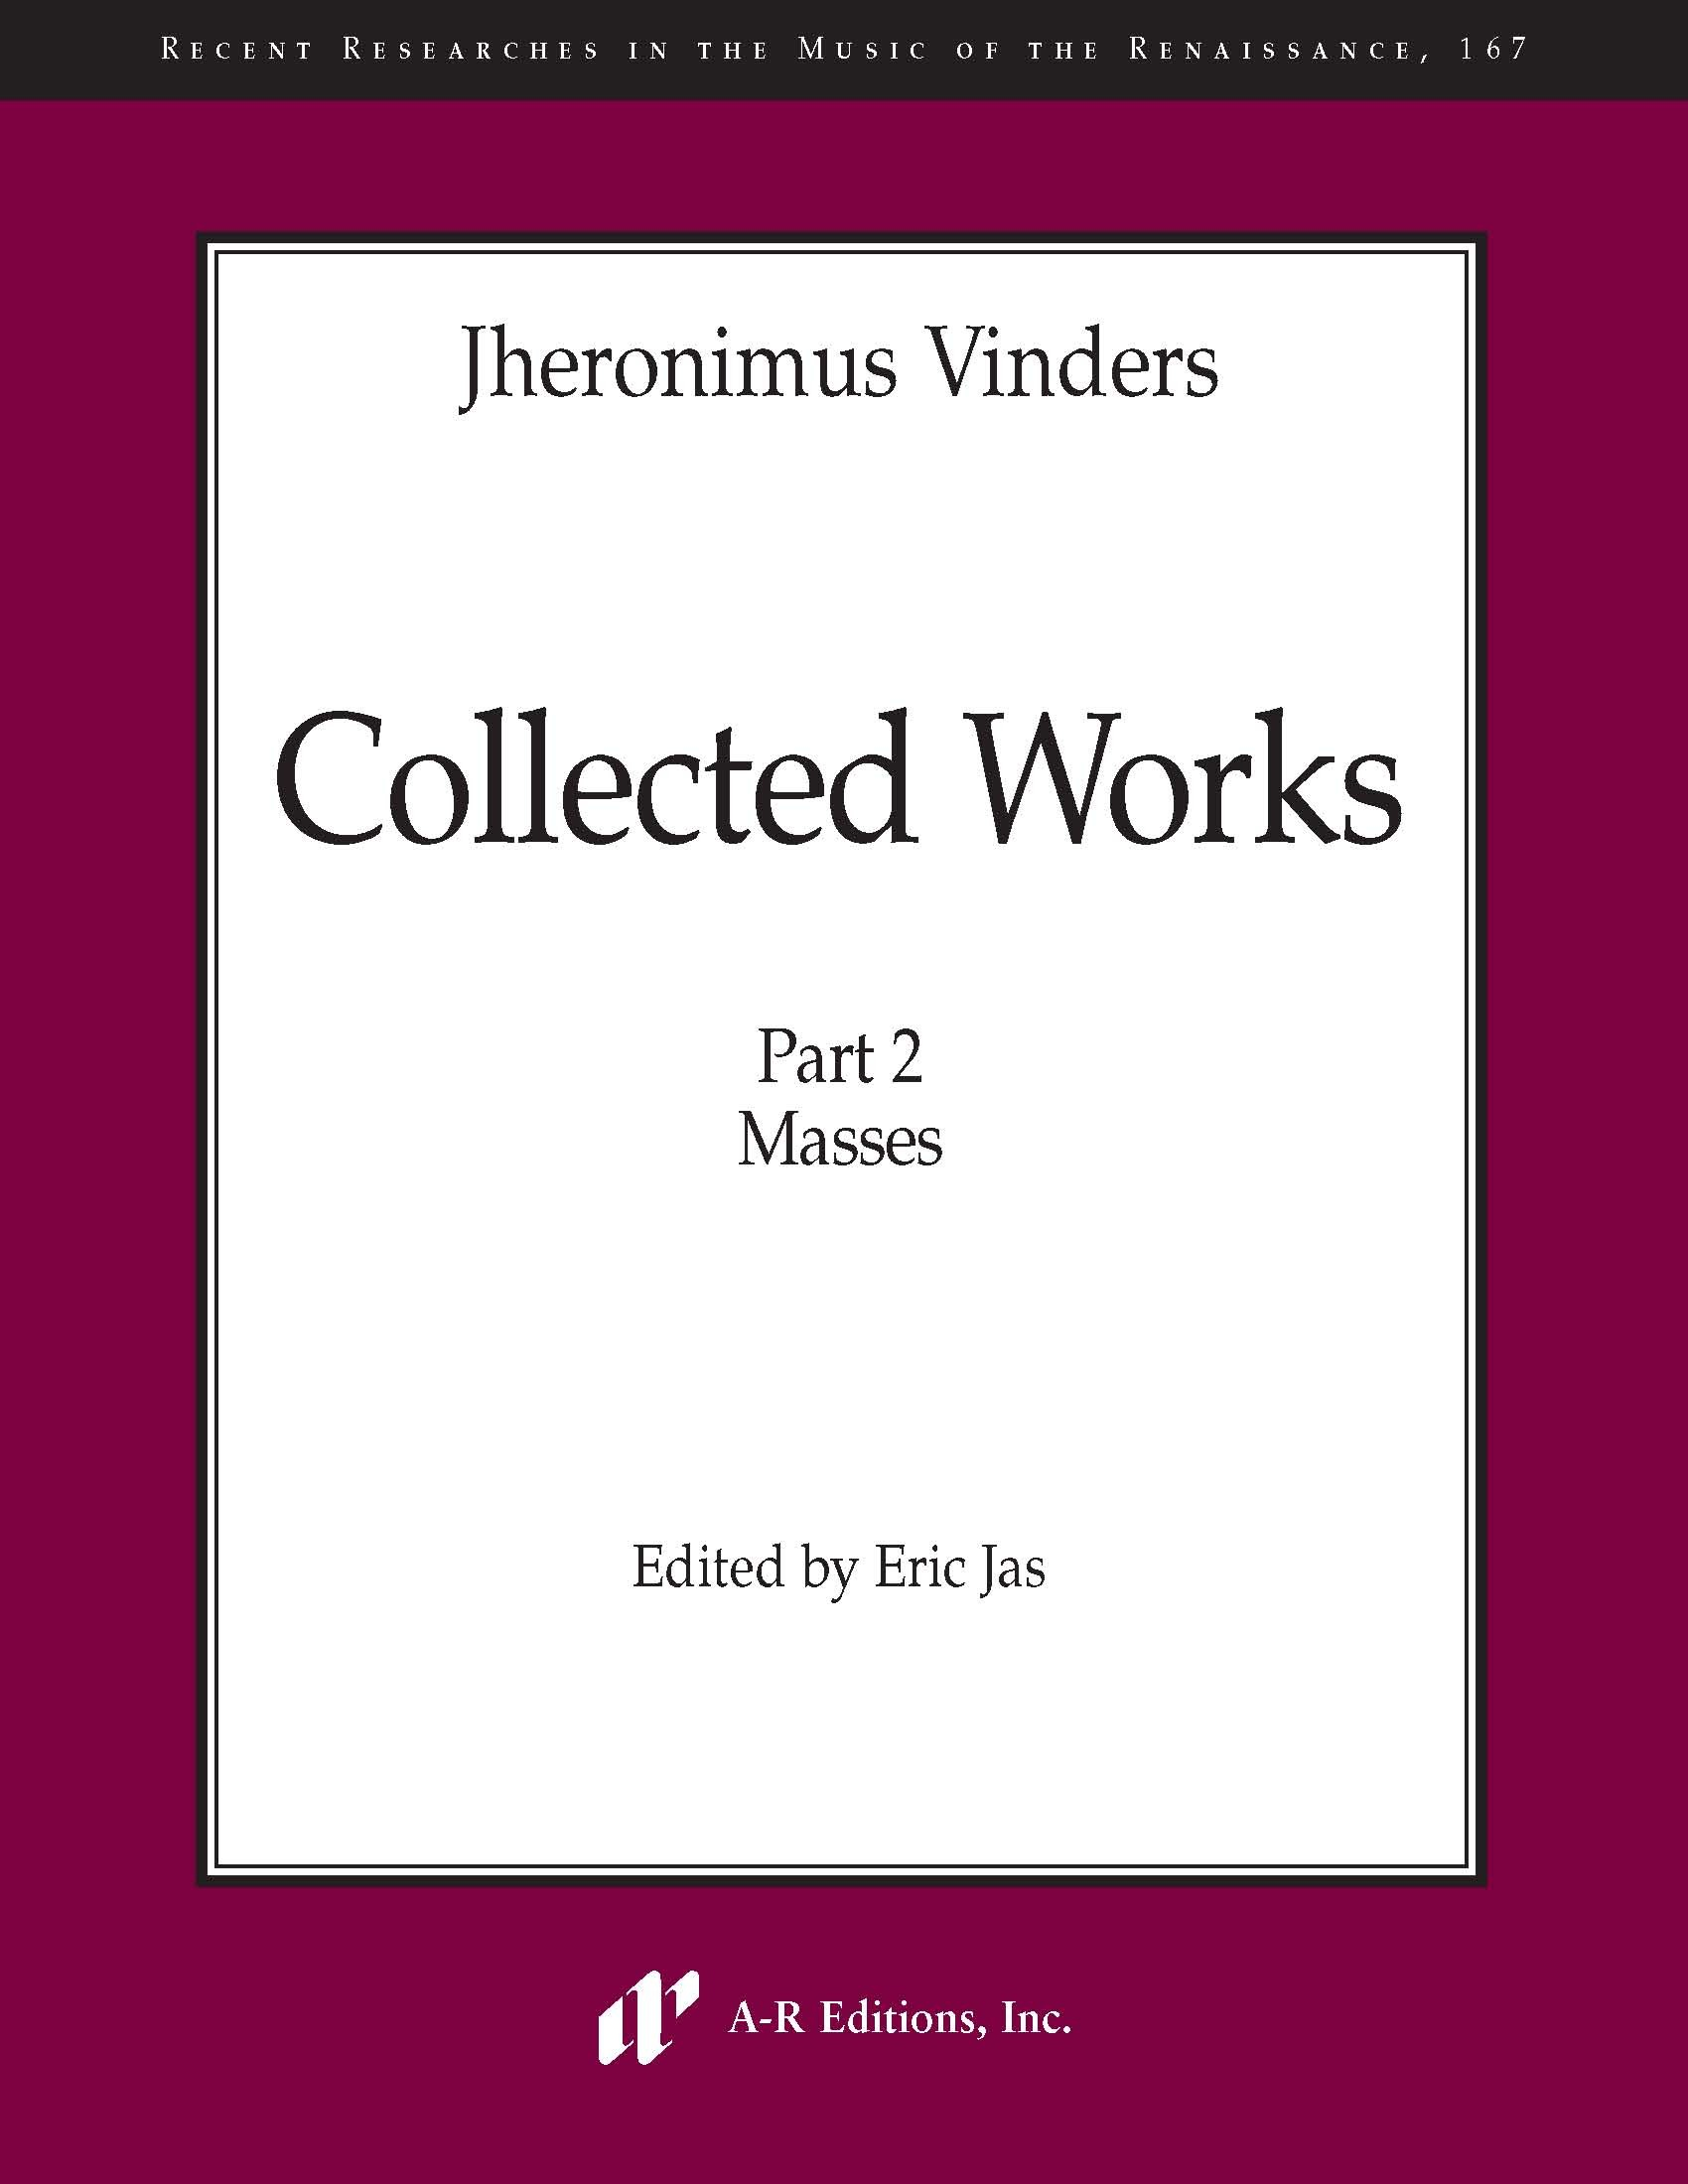 Vinders: Collected Works, Part 2